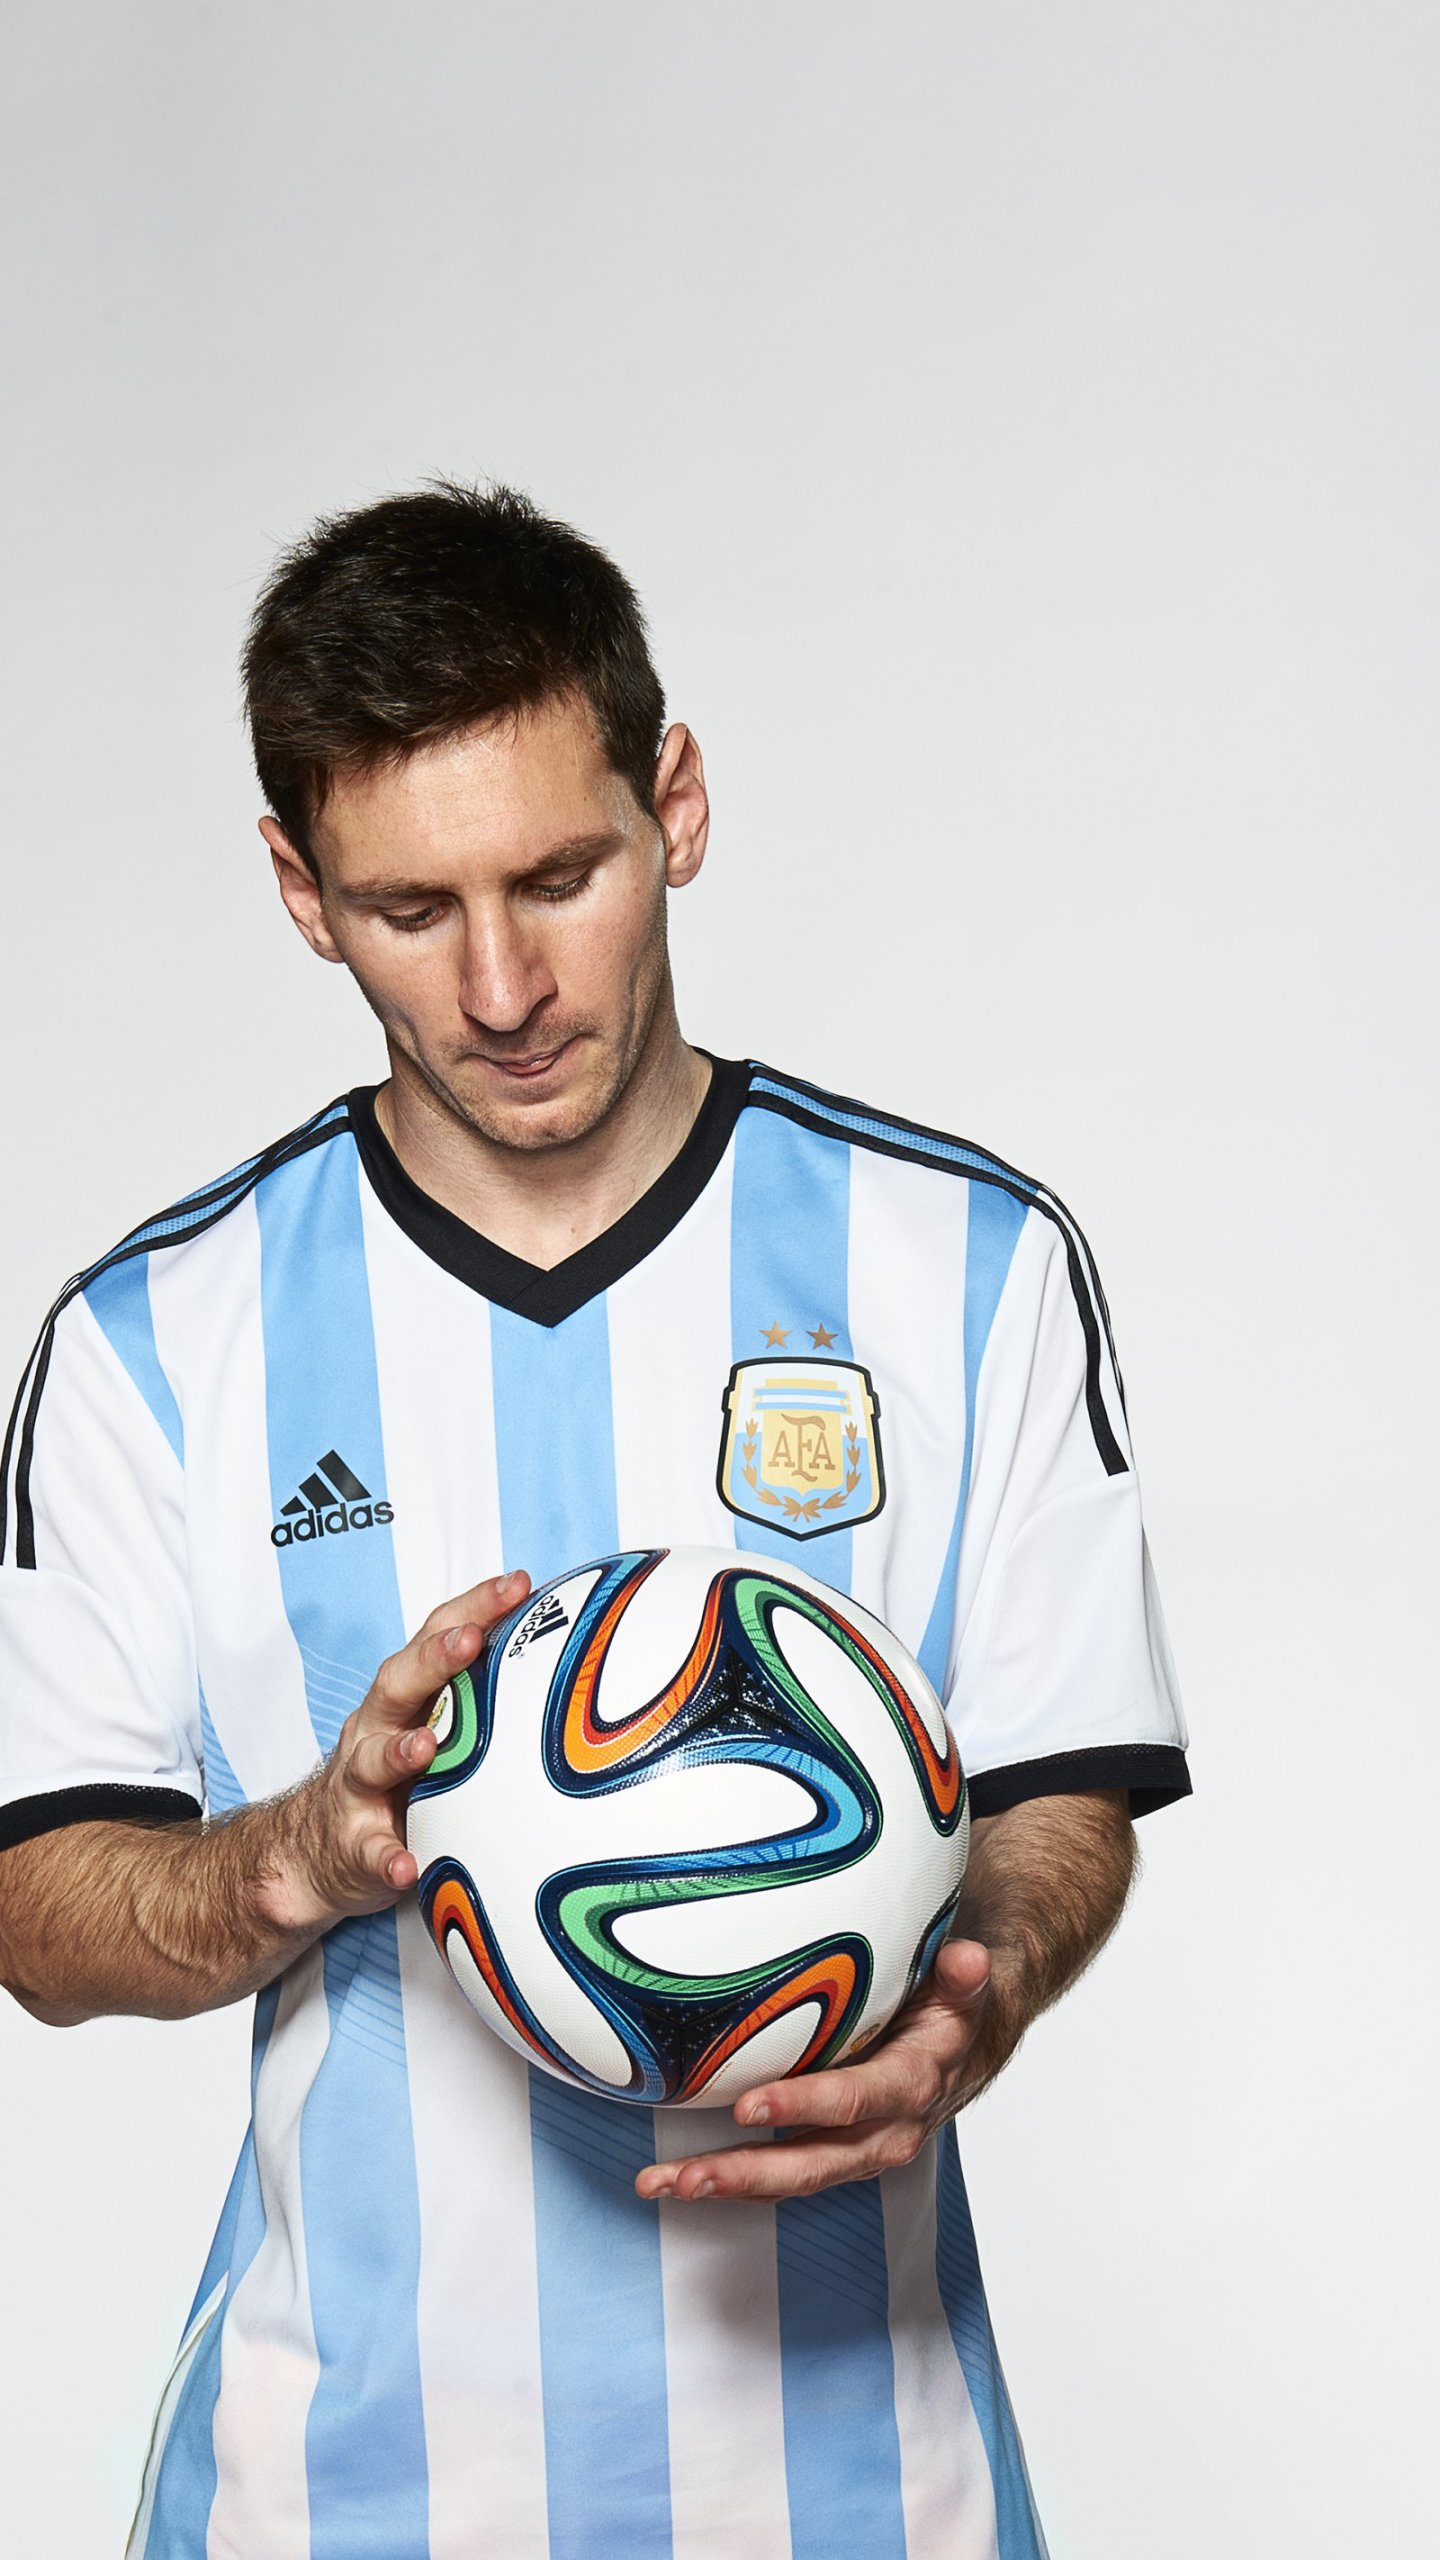 Meet the Brazuca -- the official World Cup match ball hoping not to score an own goal at Brazil 2014. Argentina hero Lionel Messi is pretty handy with the ball at his feet, and he was one of the players enlisted to test out the Brazuca for Adidas.